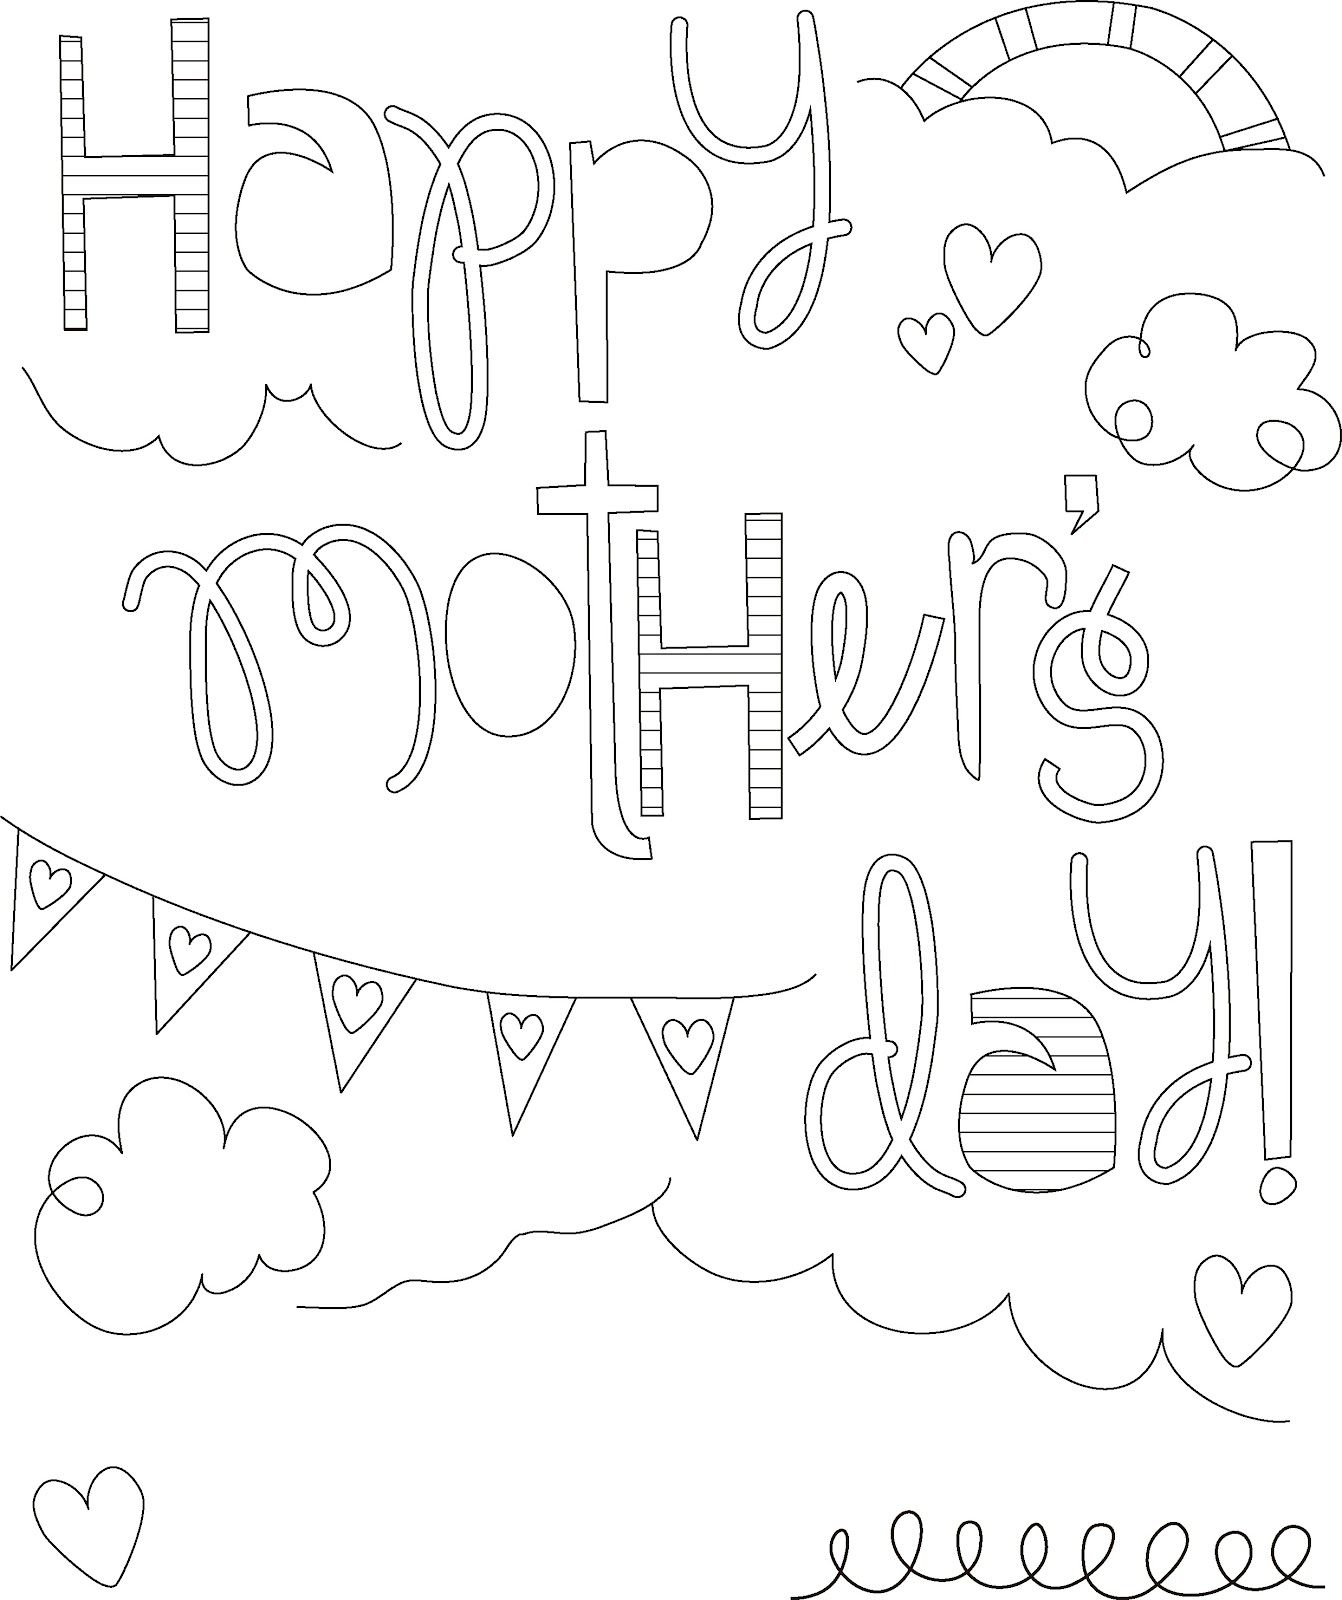 Here is a collection of some Mothers Day coloring pages which